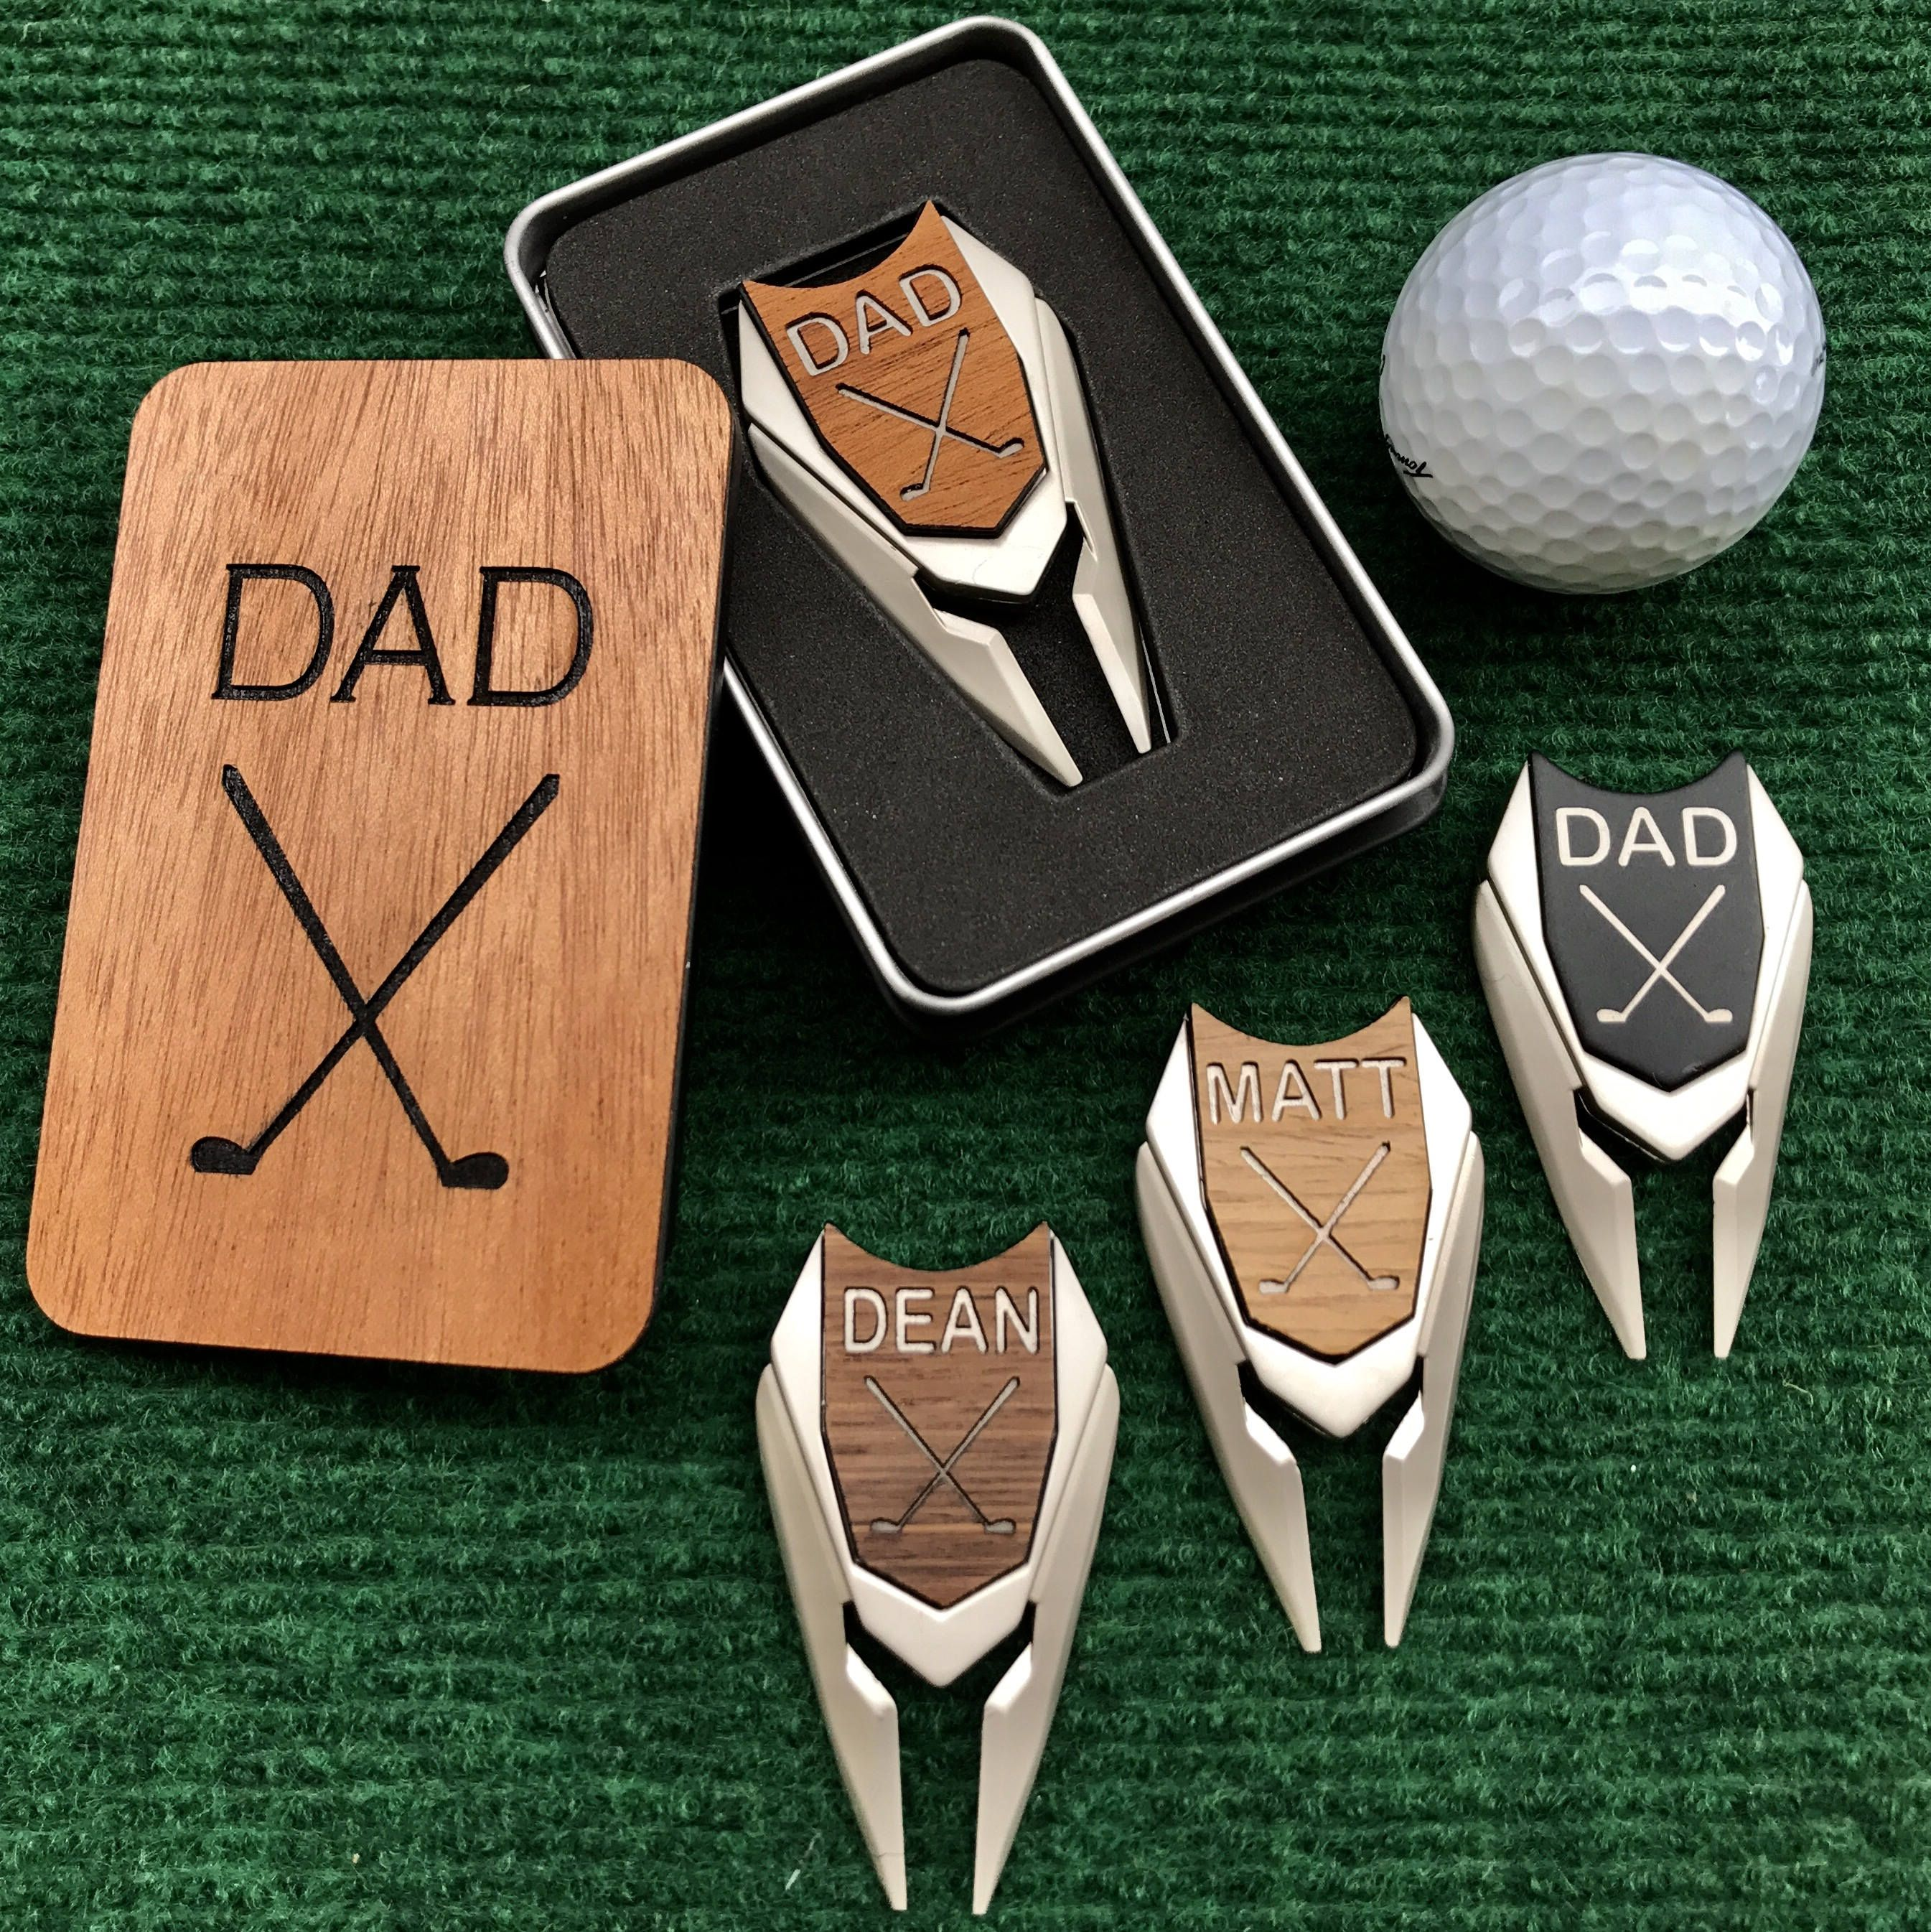 Golf Ball Marker Divot Tool In Gift Box Wood U Like Inc Golf Gifts For Men Golf Birthday Gifts Personalized Golf Ball Marker